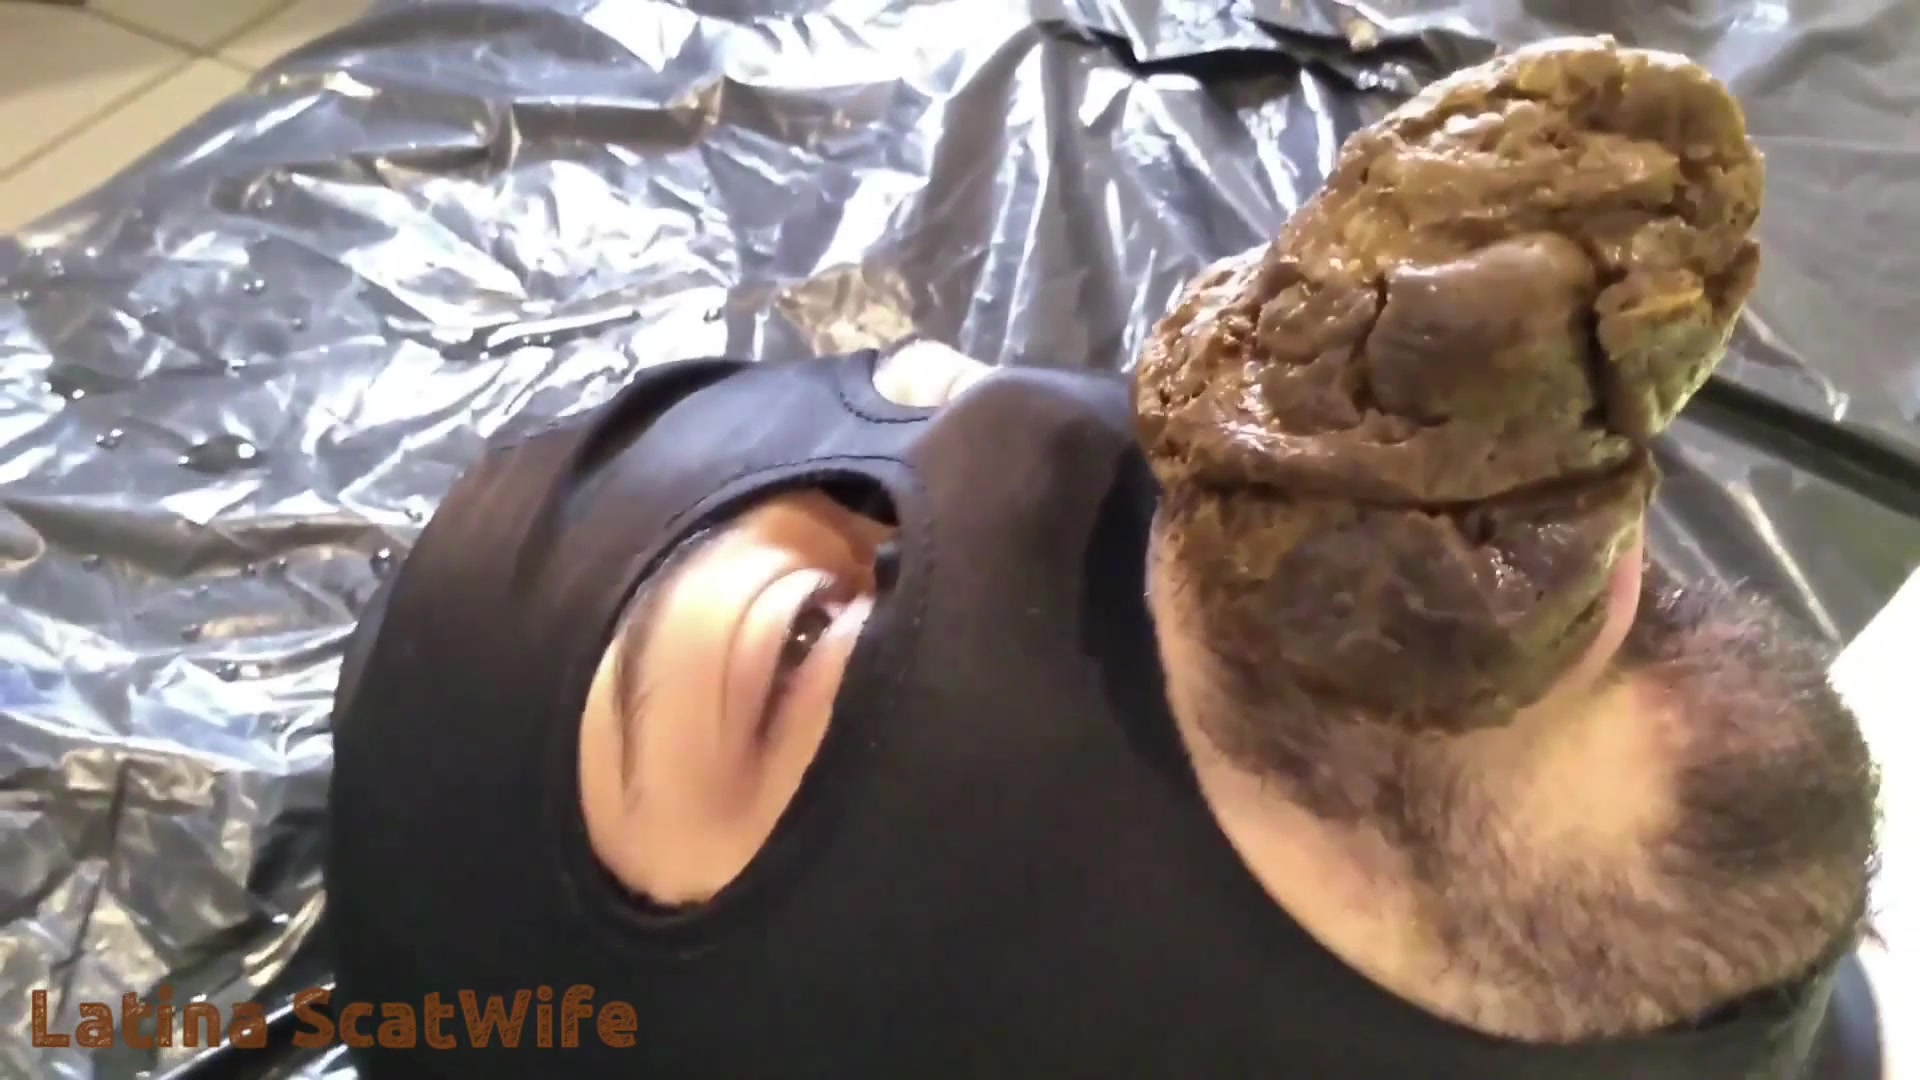 LatinaScatWife - Giving It Straight To The Slaves Mouth 00000